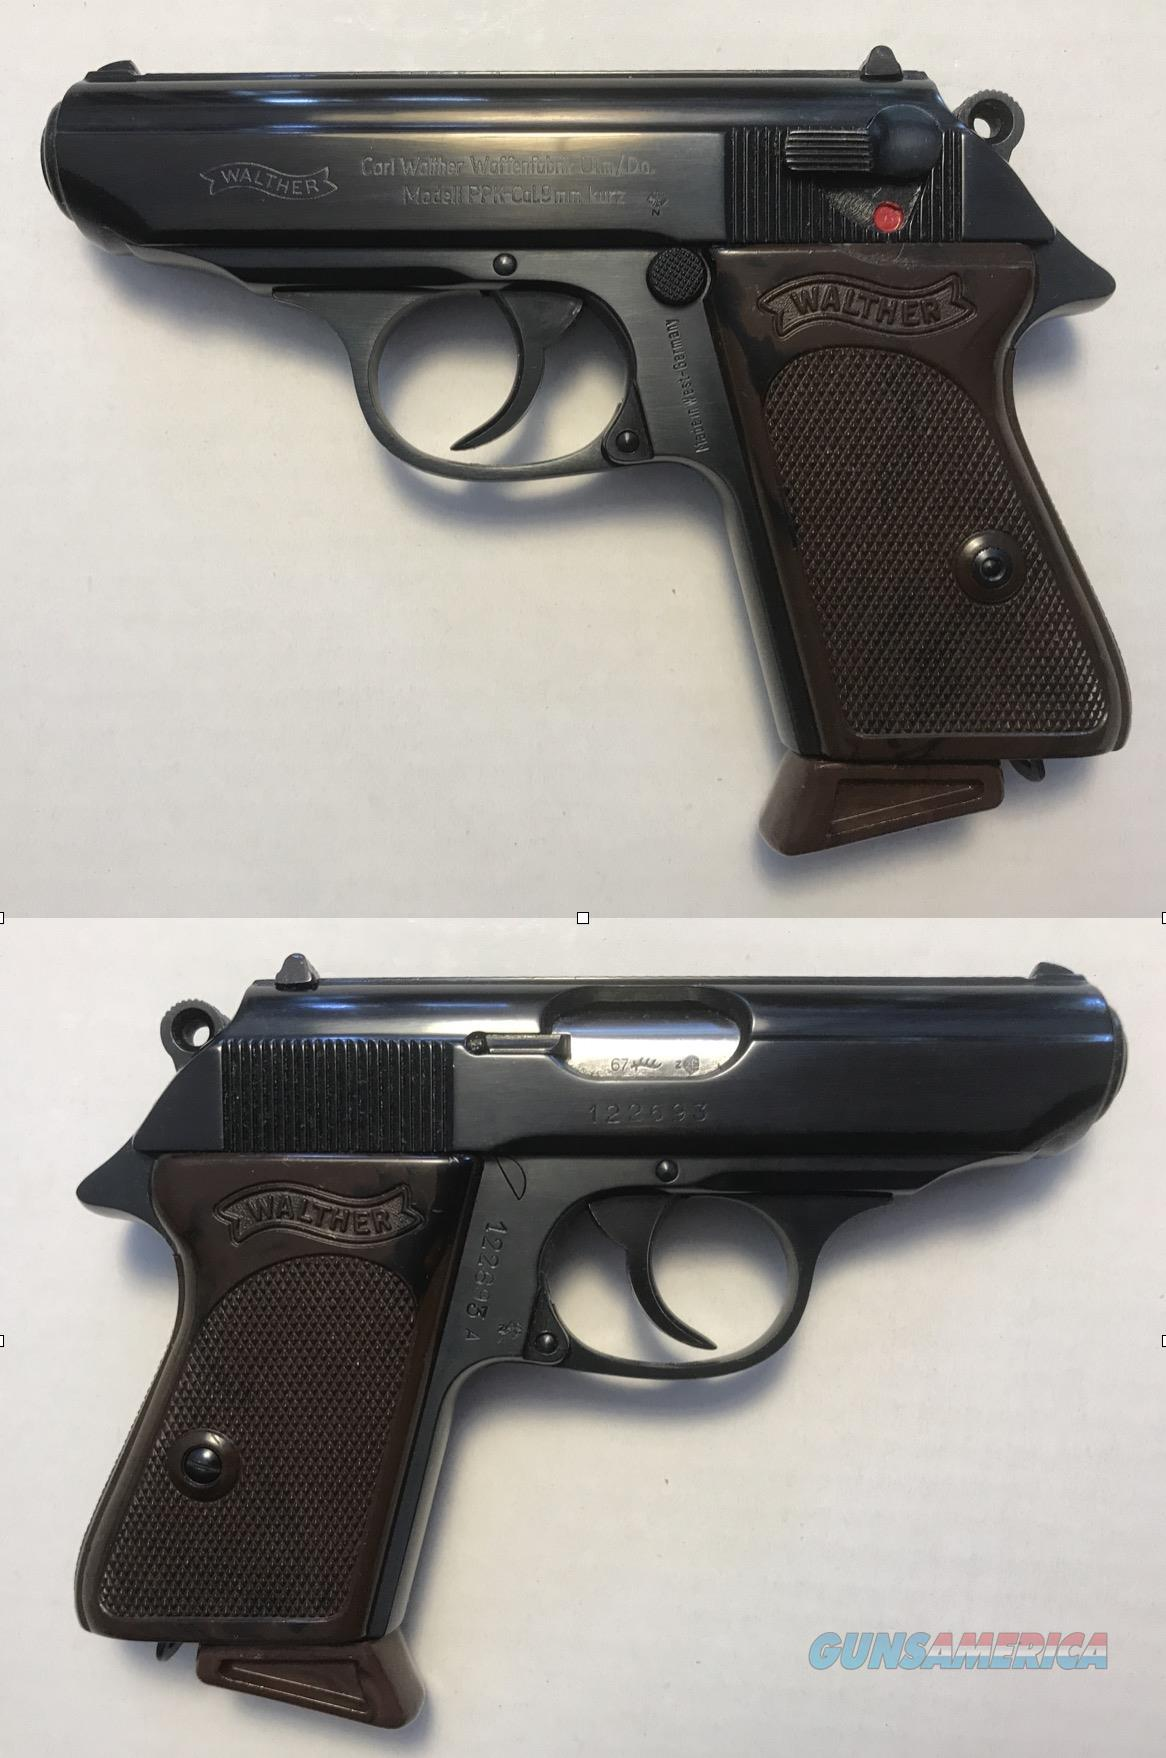 German Walther PPK 9mmK (.380) C&R Mfg. 1967  Guns > Pistols > Walther Pistols > Post WWII > PPK Series